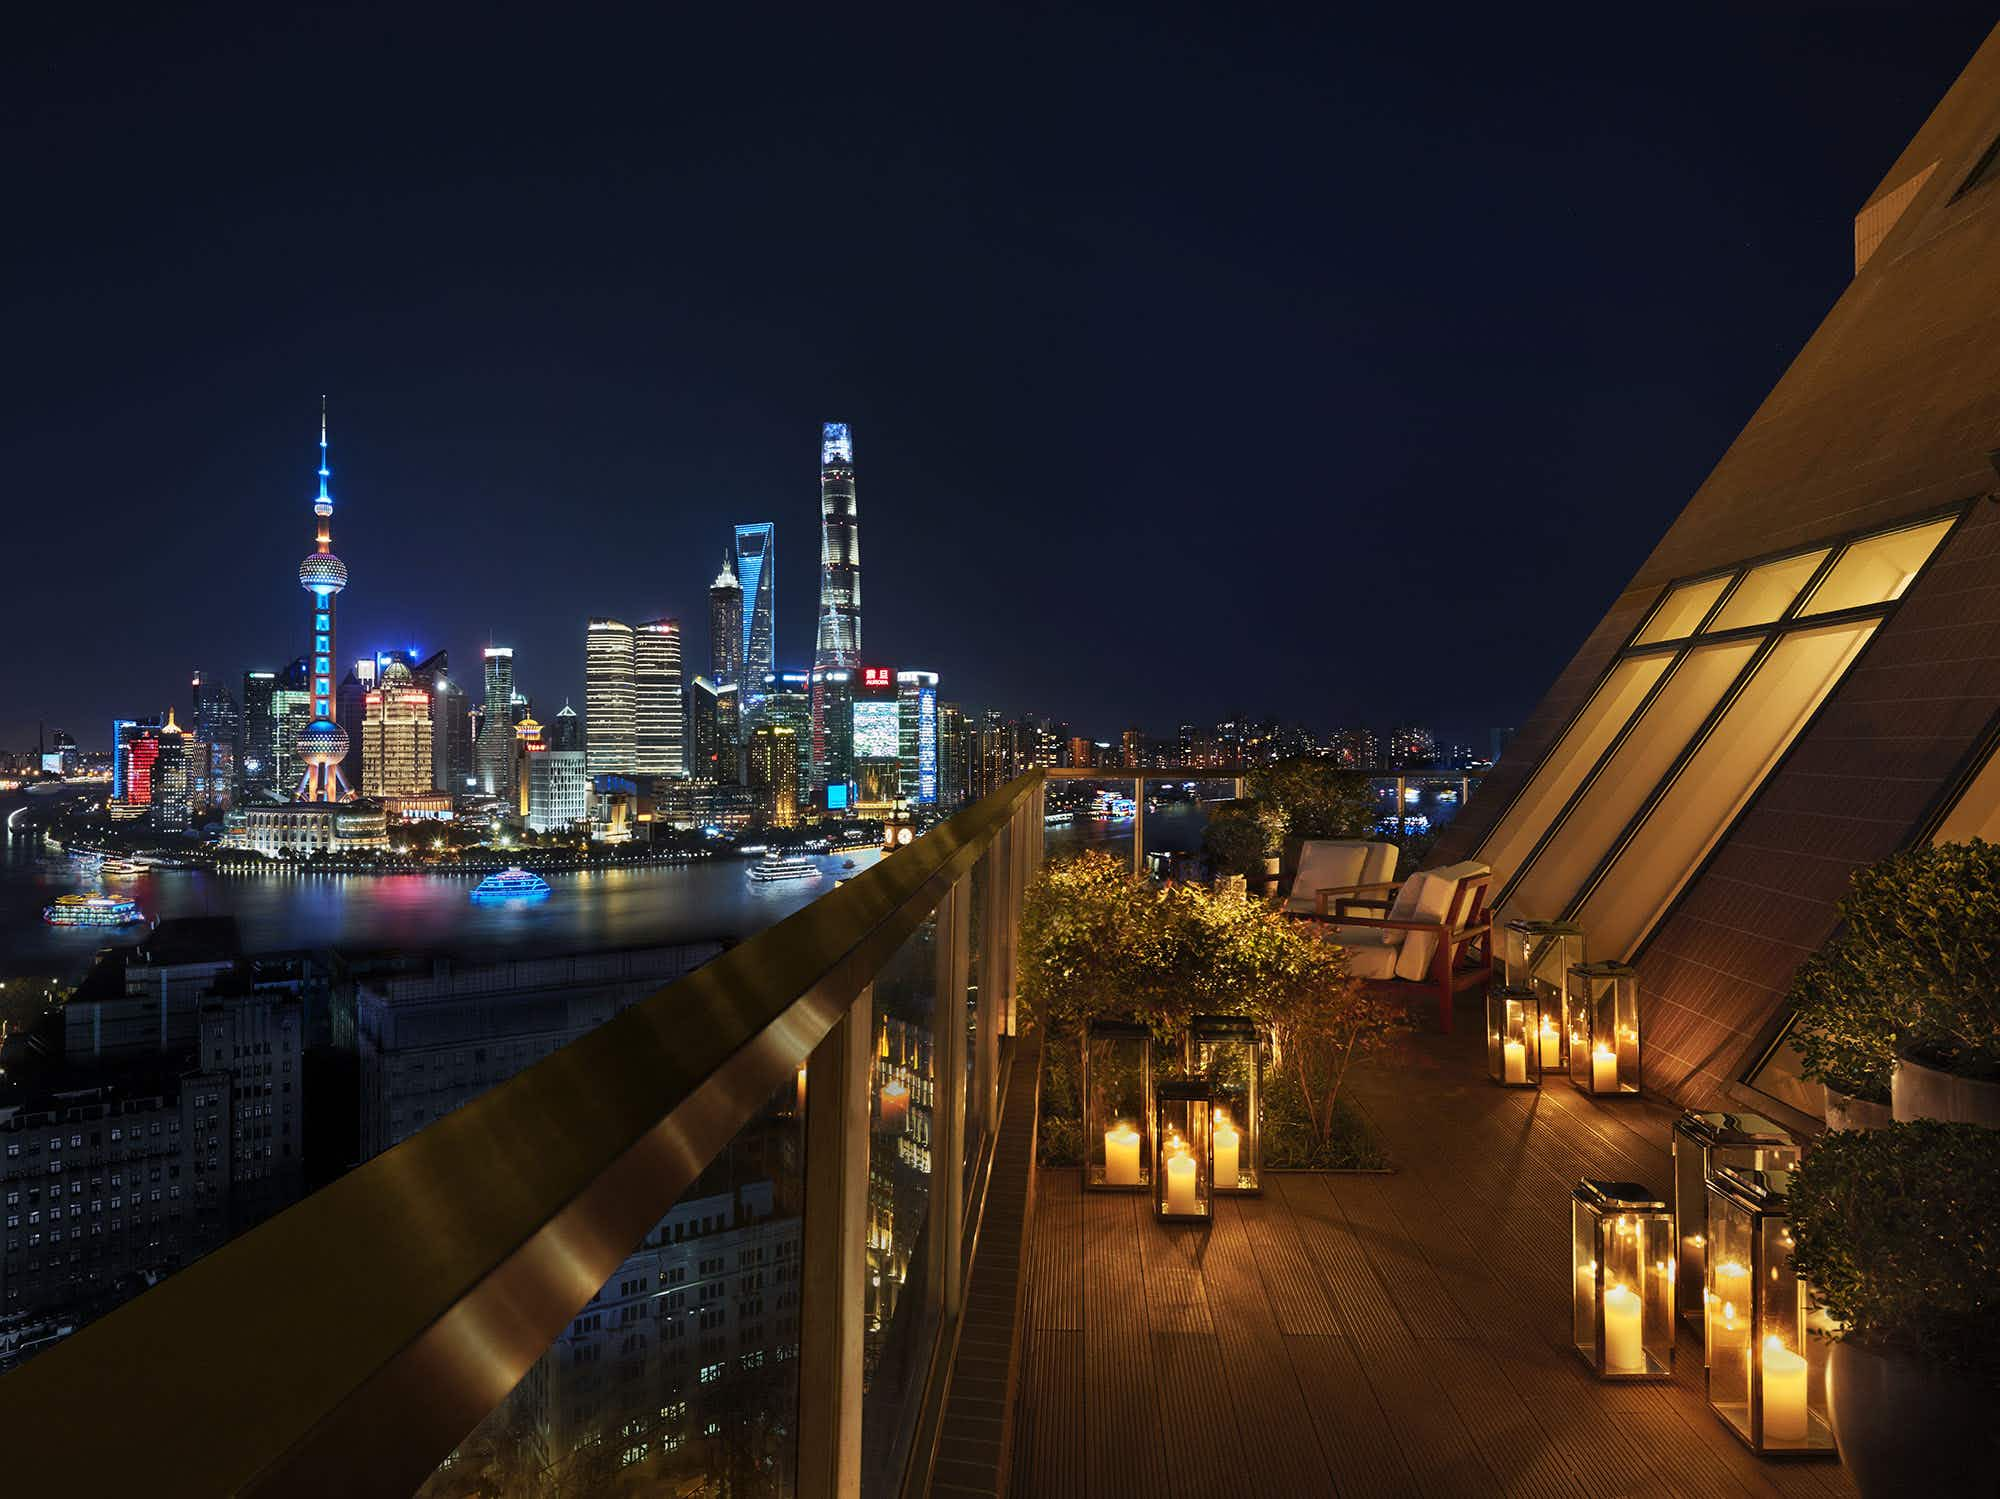 This new Shanghai luxury heritage hotel rocks its own glamorous nightclub